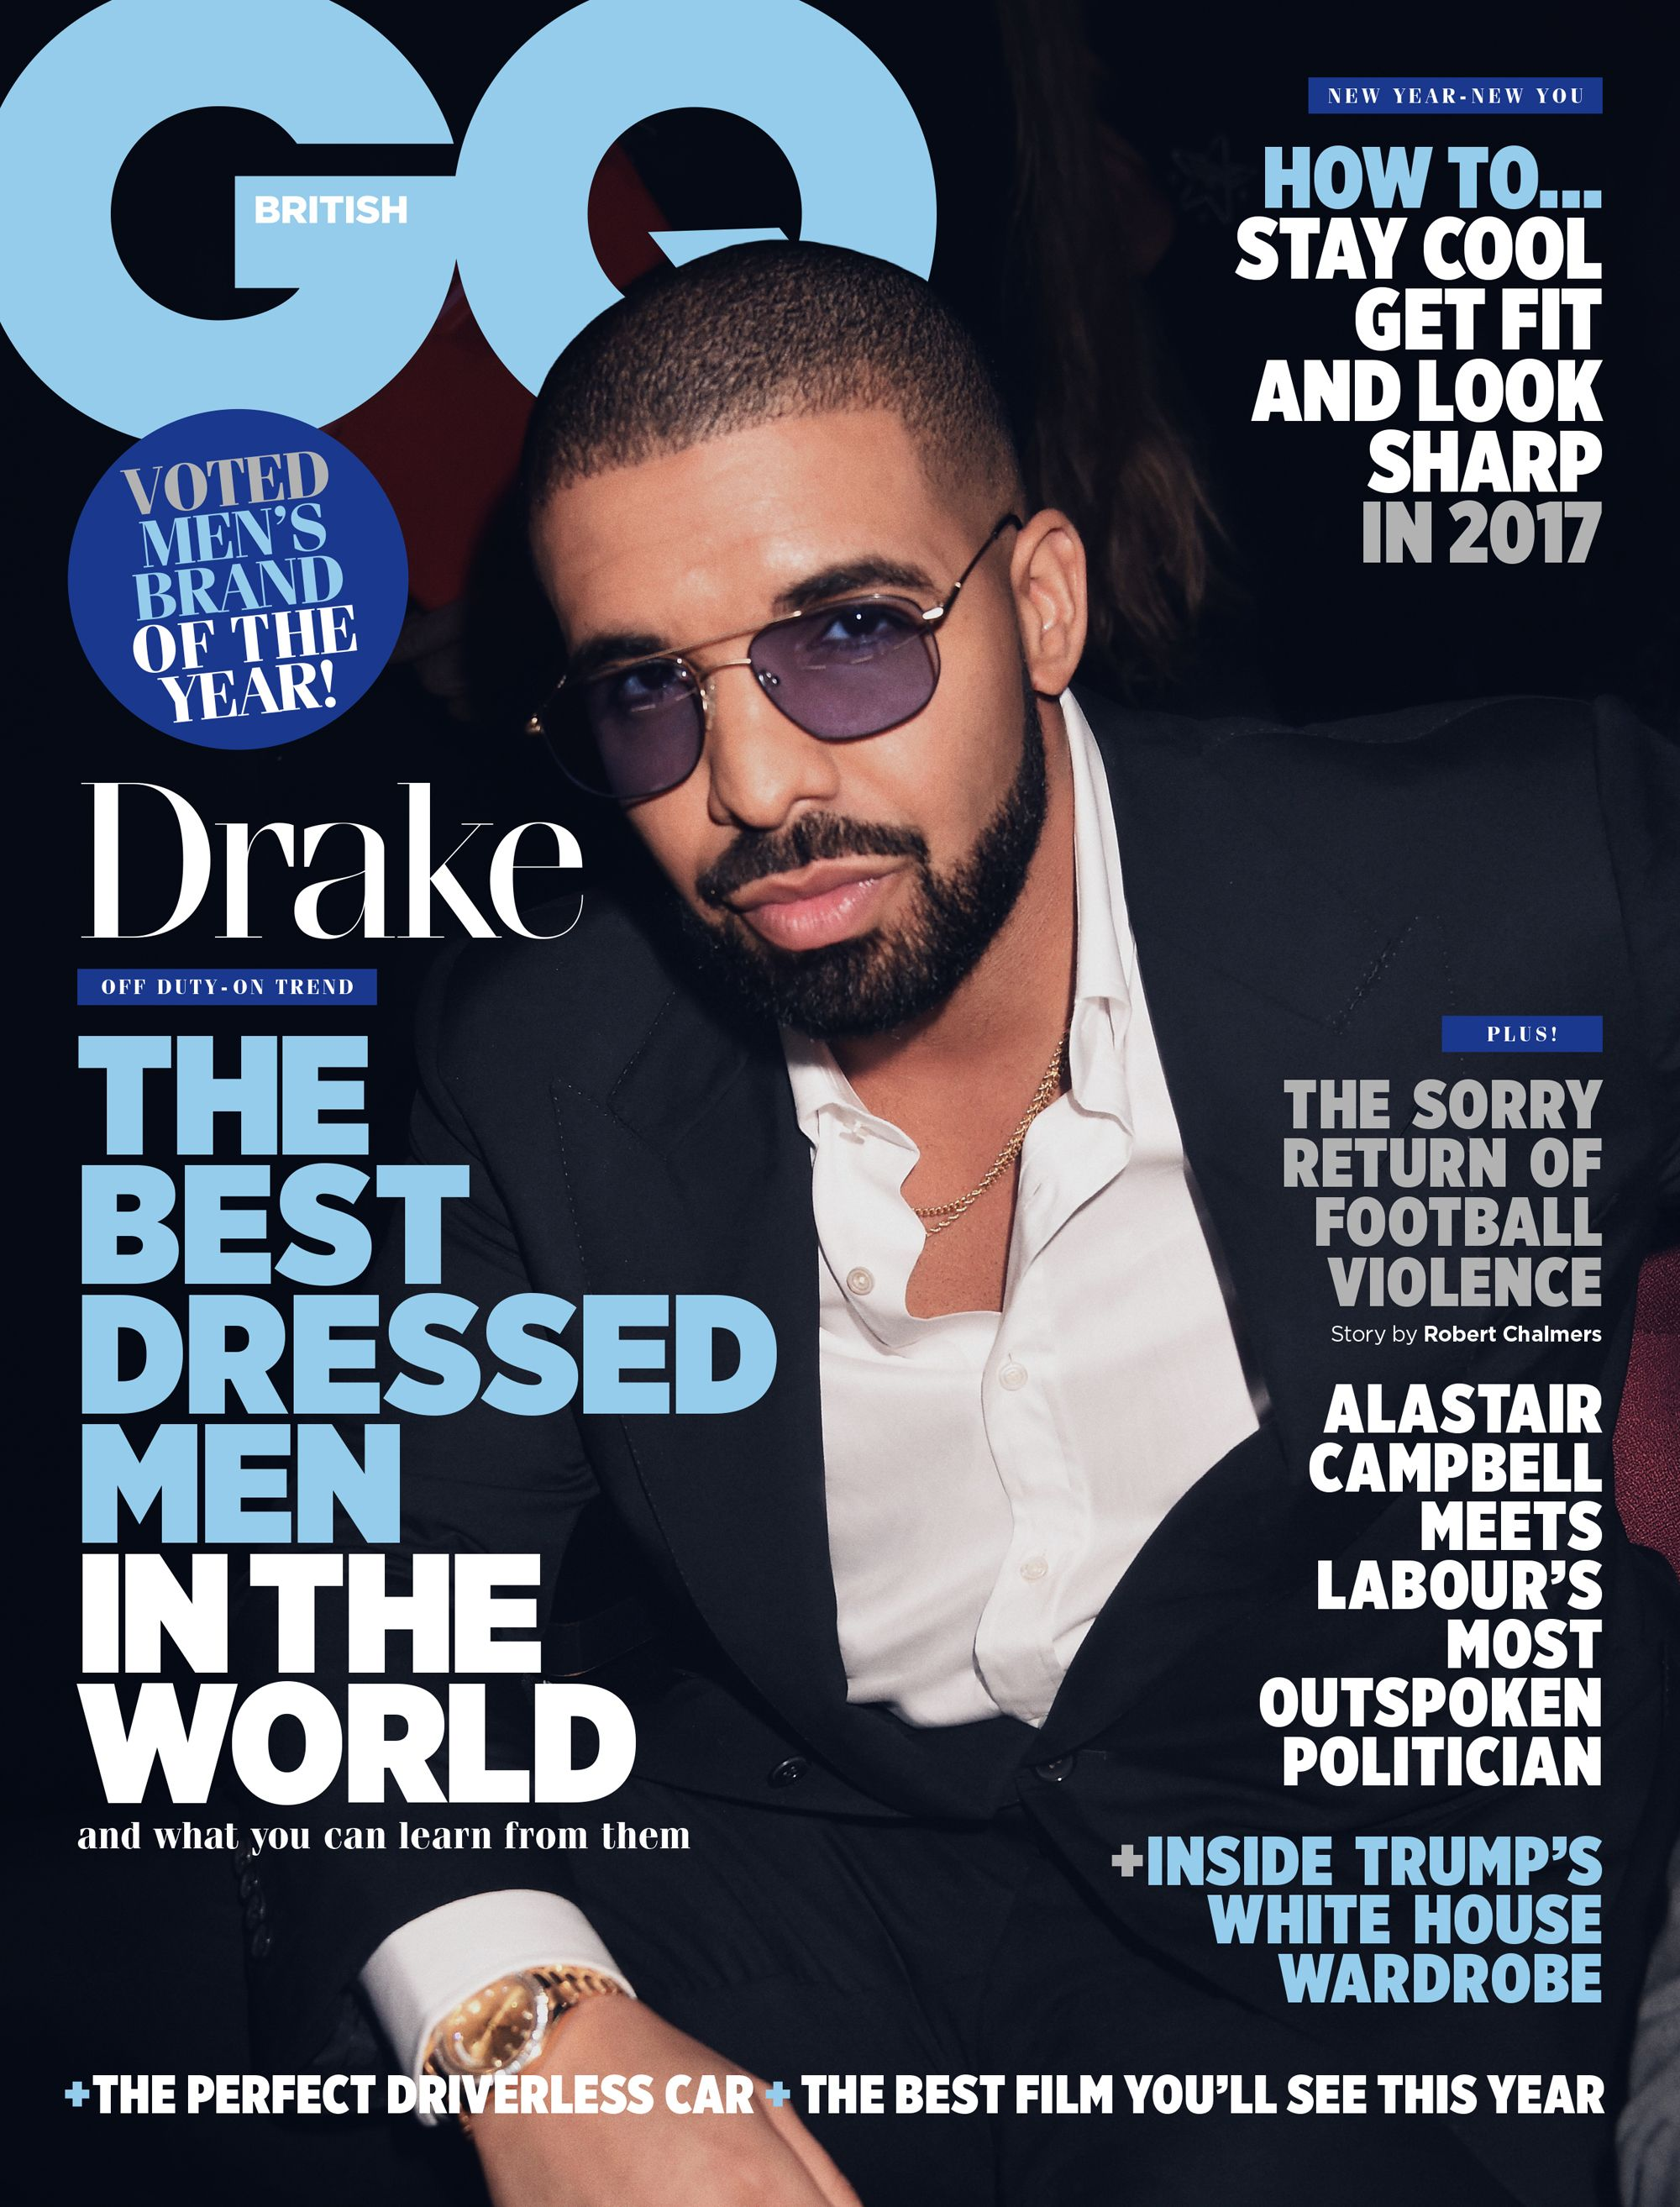 GQ Magazine February 2017 Cover And Contents